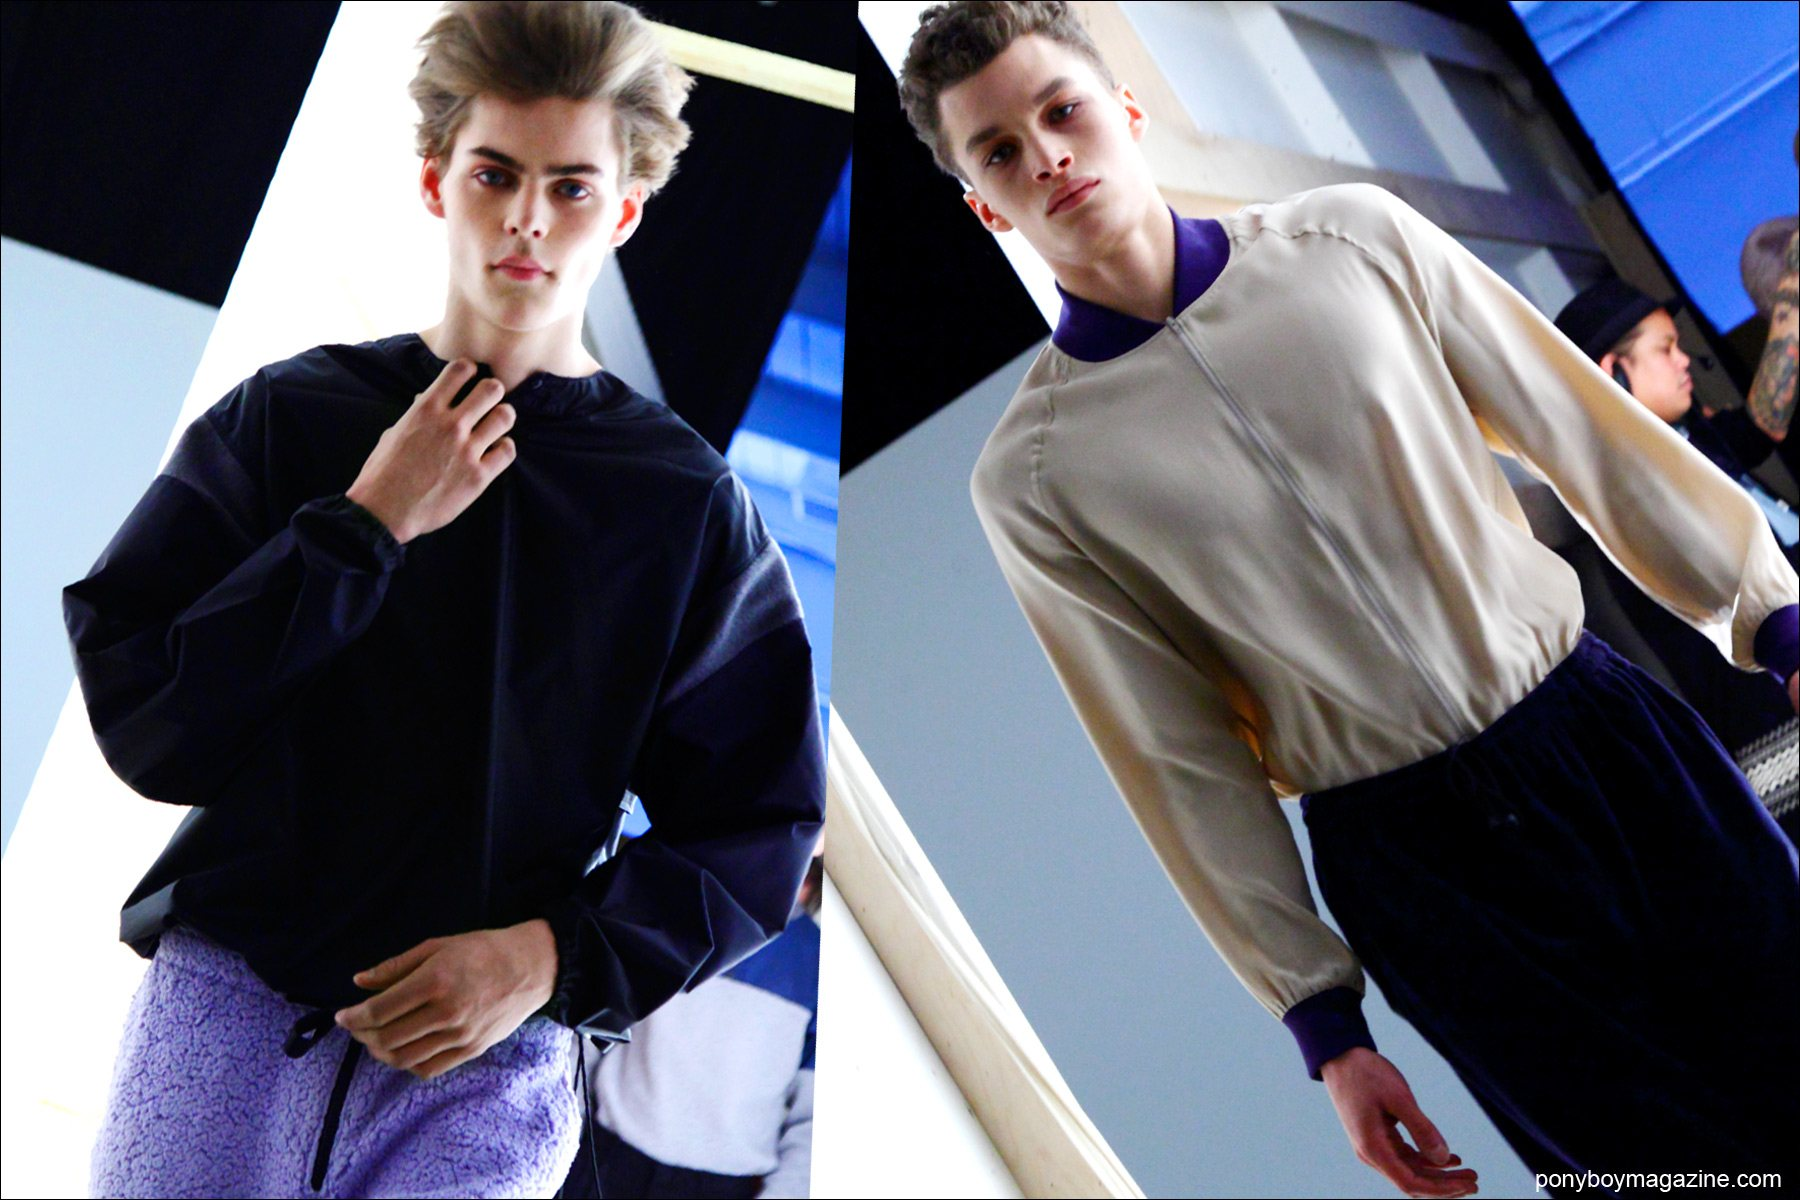 Male models, including Mats Van Snippenberg, exiting the Martin Keen F/W15 runway show at Pier 59 Studios New York. Photographs by Alexander Thompson for Ponyboy magazine.